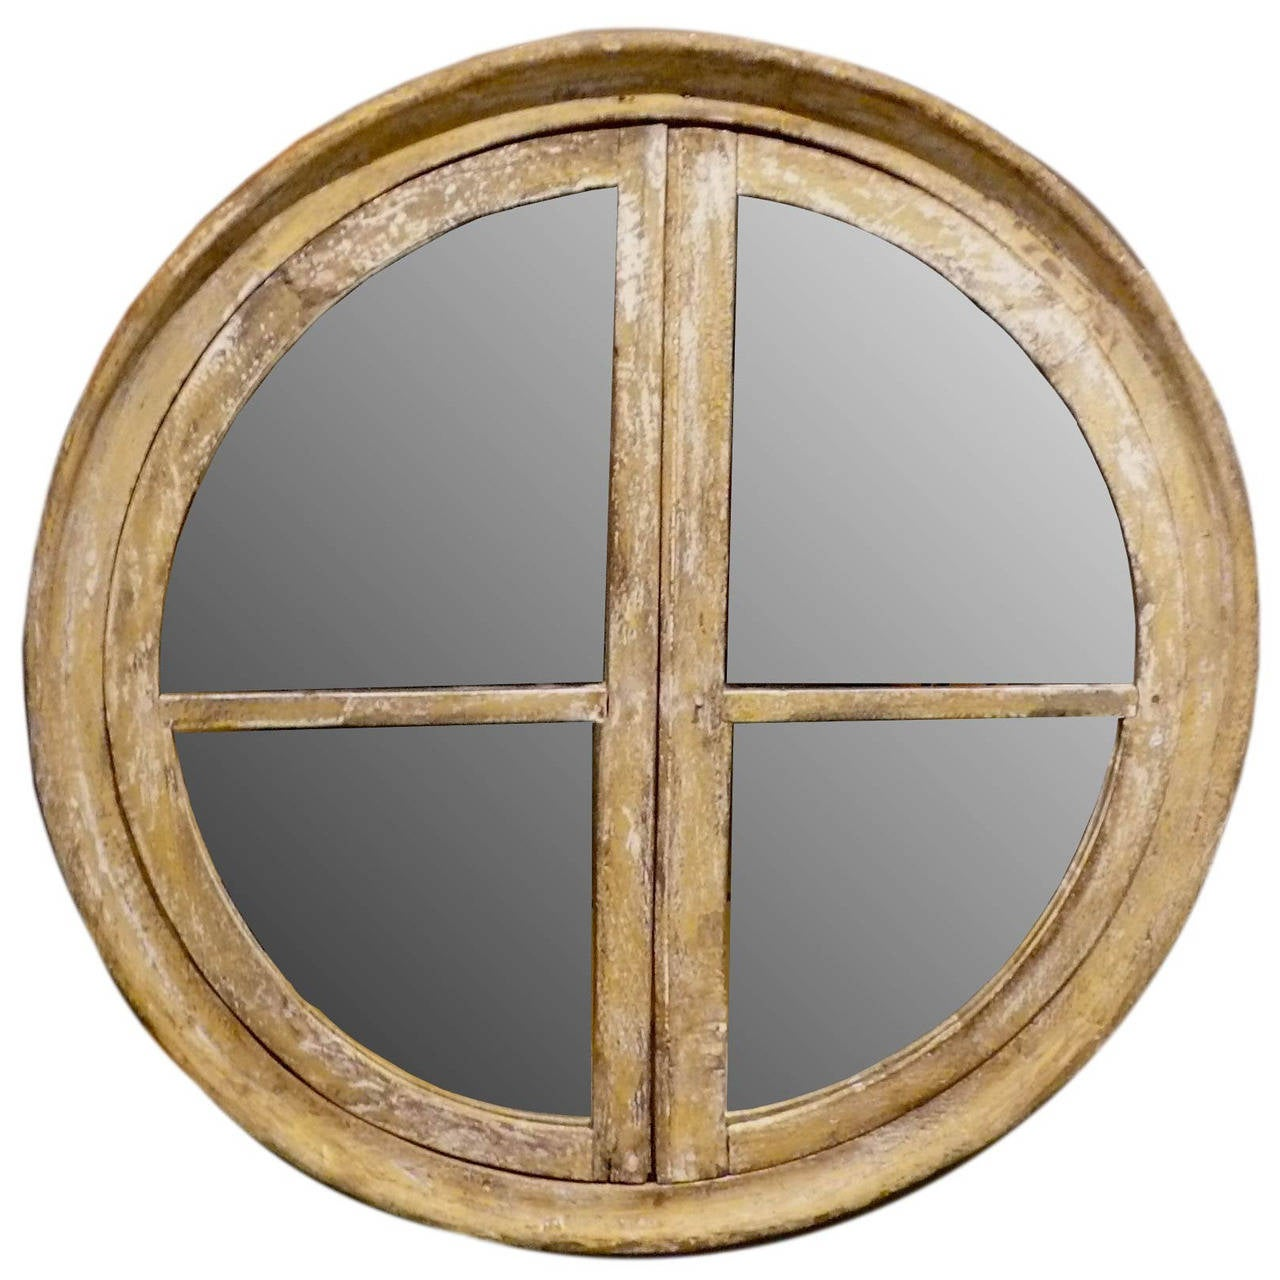 Round wooden frame mirror for sale at 1stdibs Round framed mirror